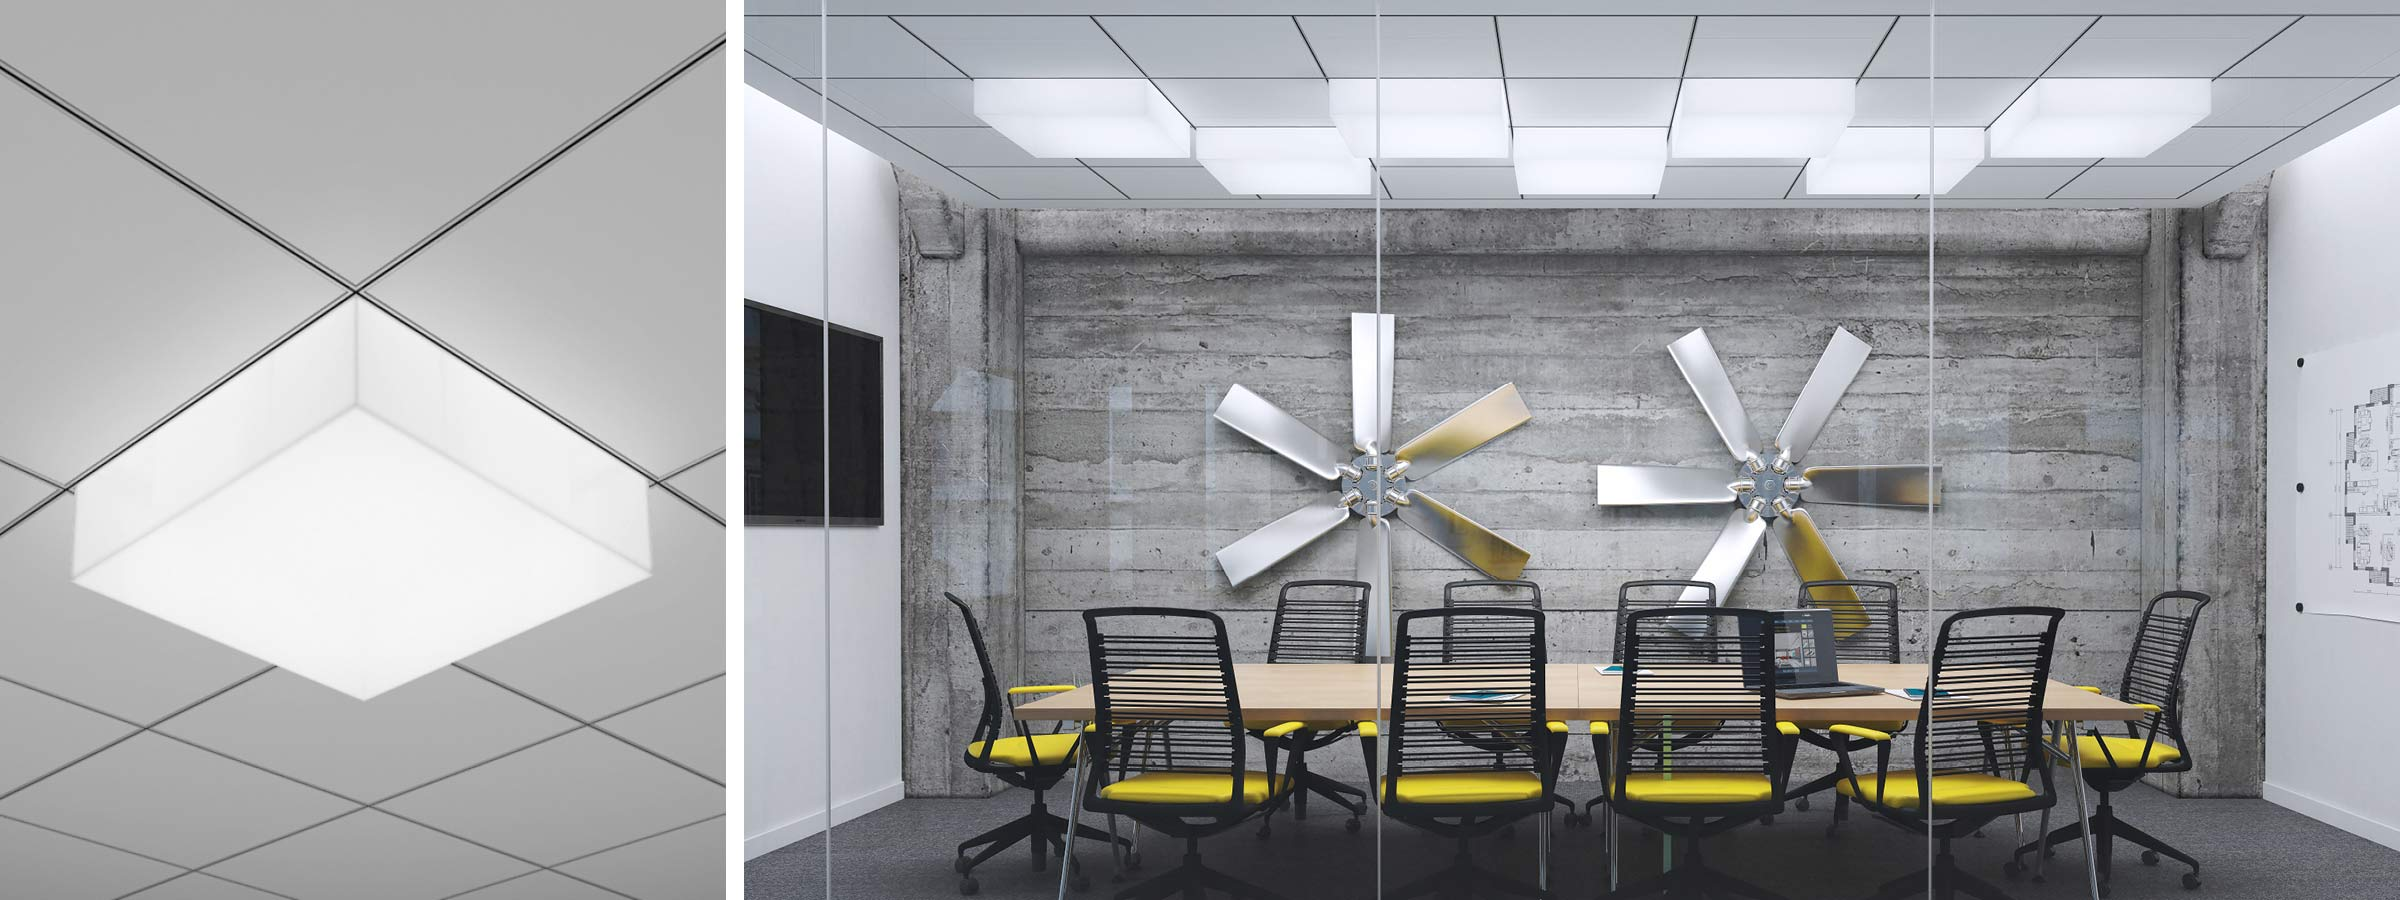 Skyefall Render Recessed Meeting Room HERO